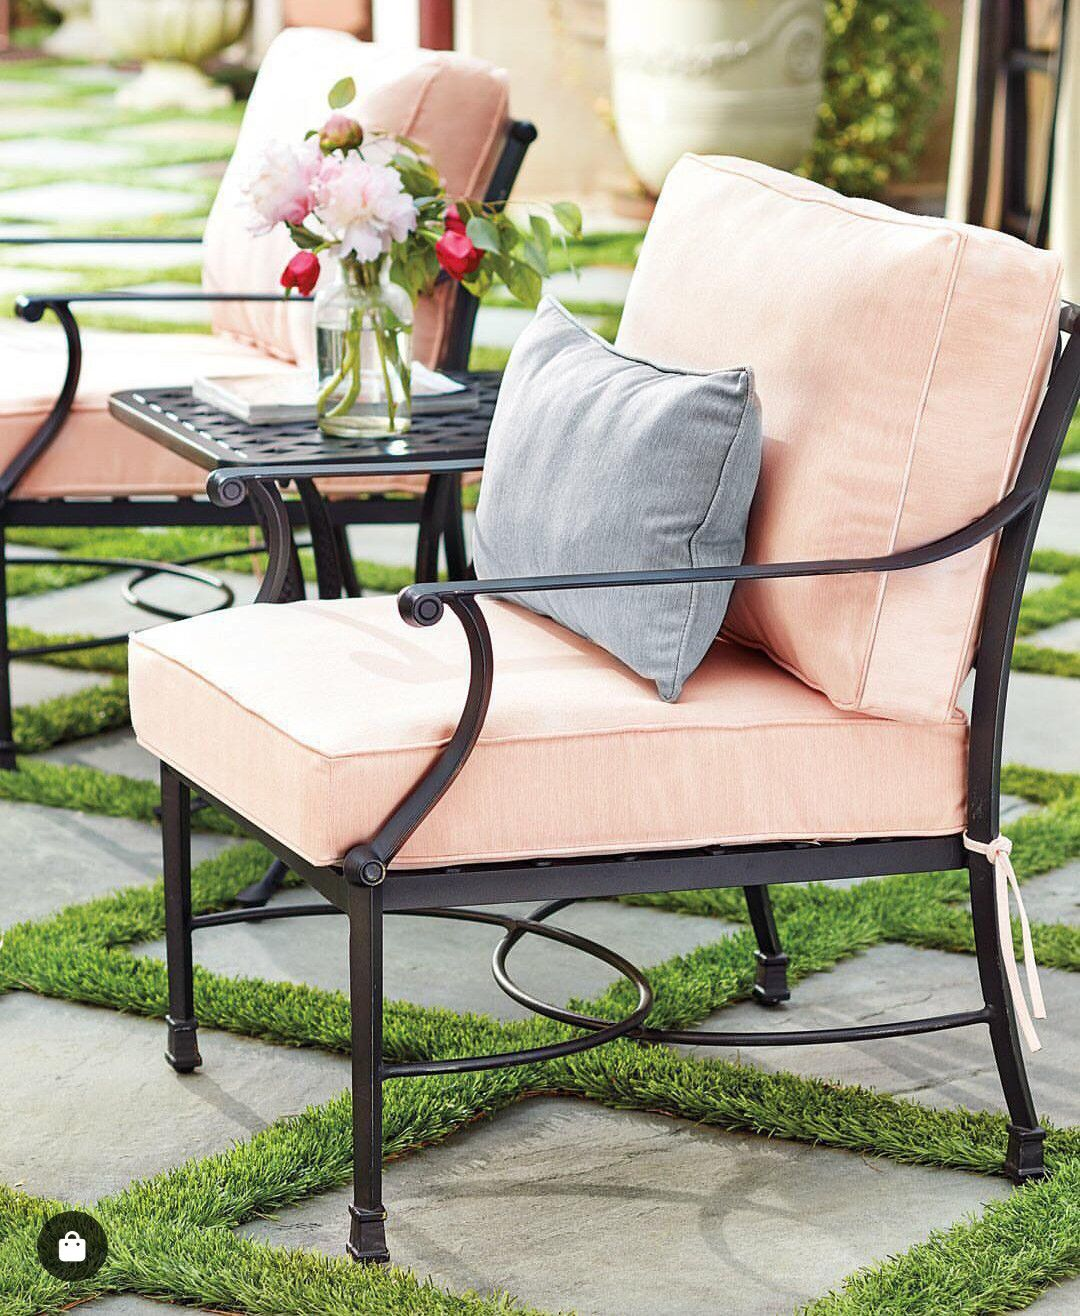 Peachy Amalfi Lounge Chairs With Cushions Set Of 2 In 2019 Ncnpc Chair Design For Home Ncnpcorg